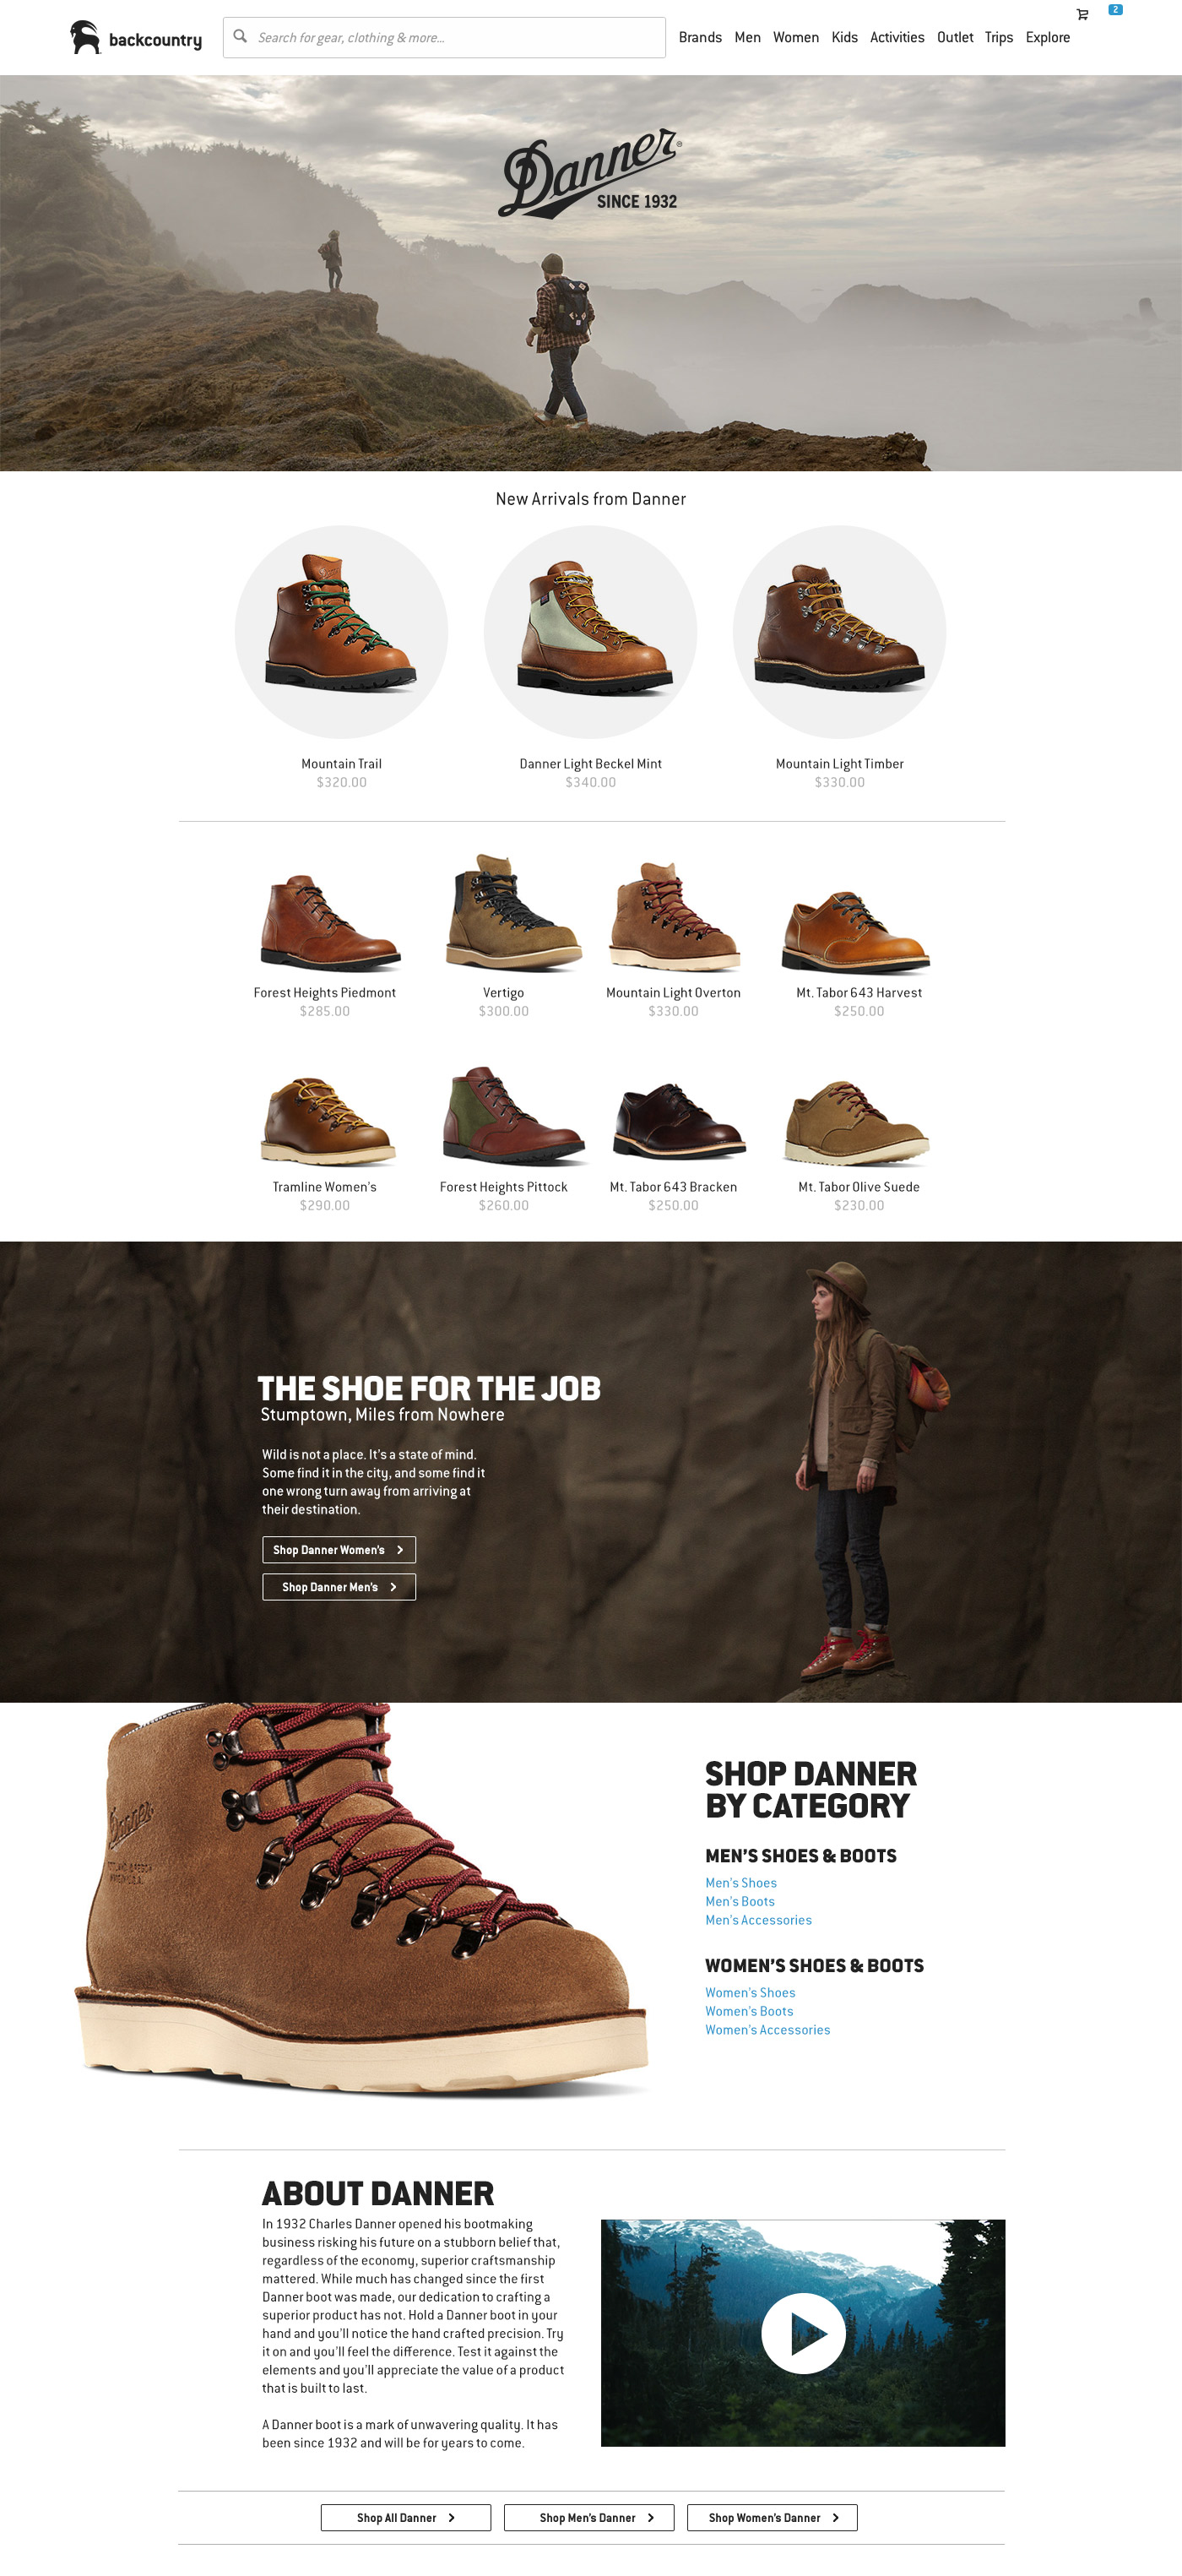 Backcountry.com Danner Brand Page